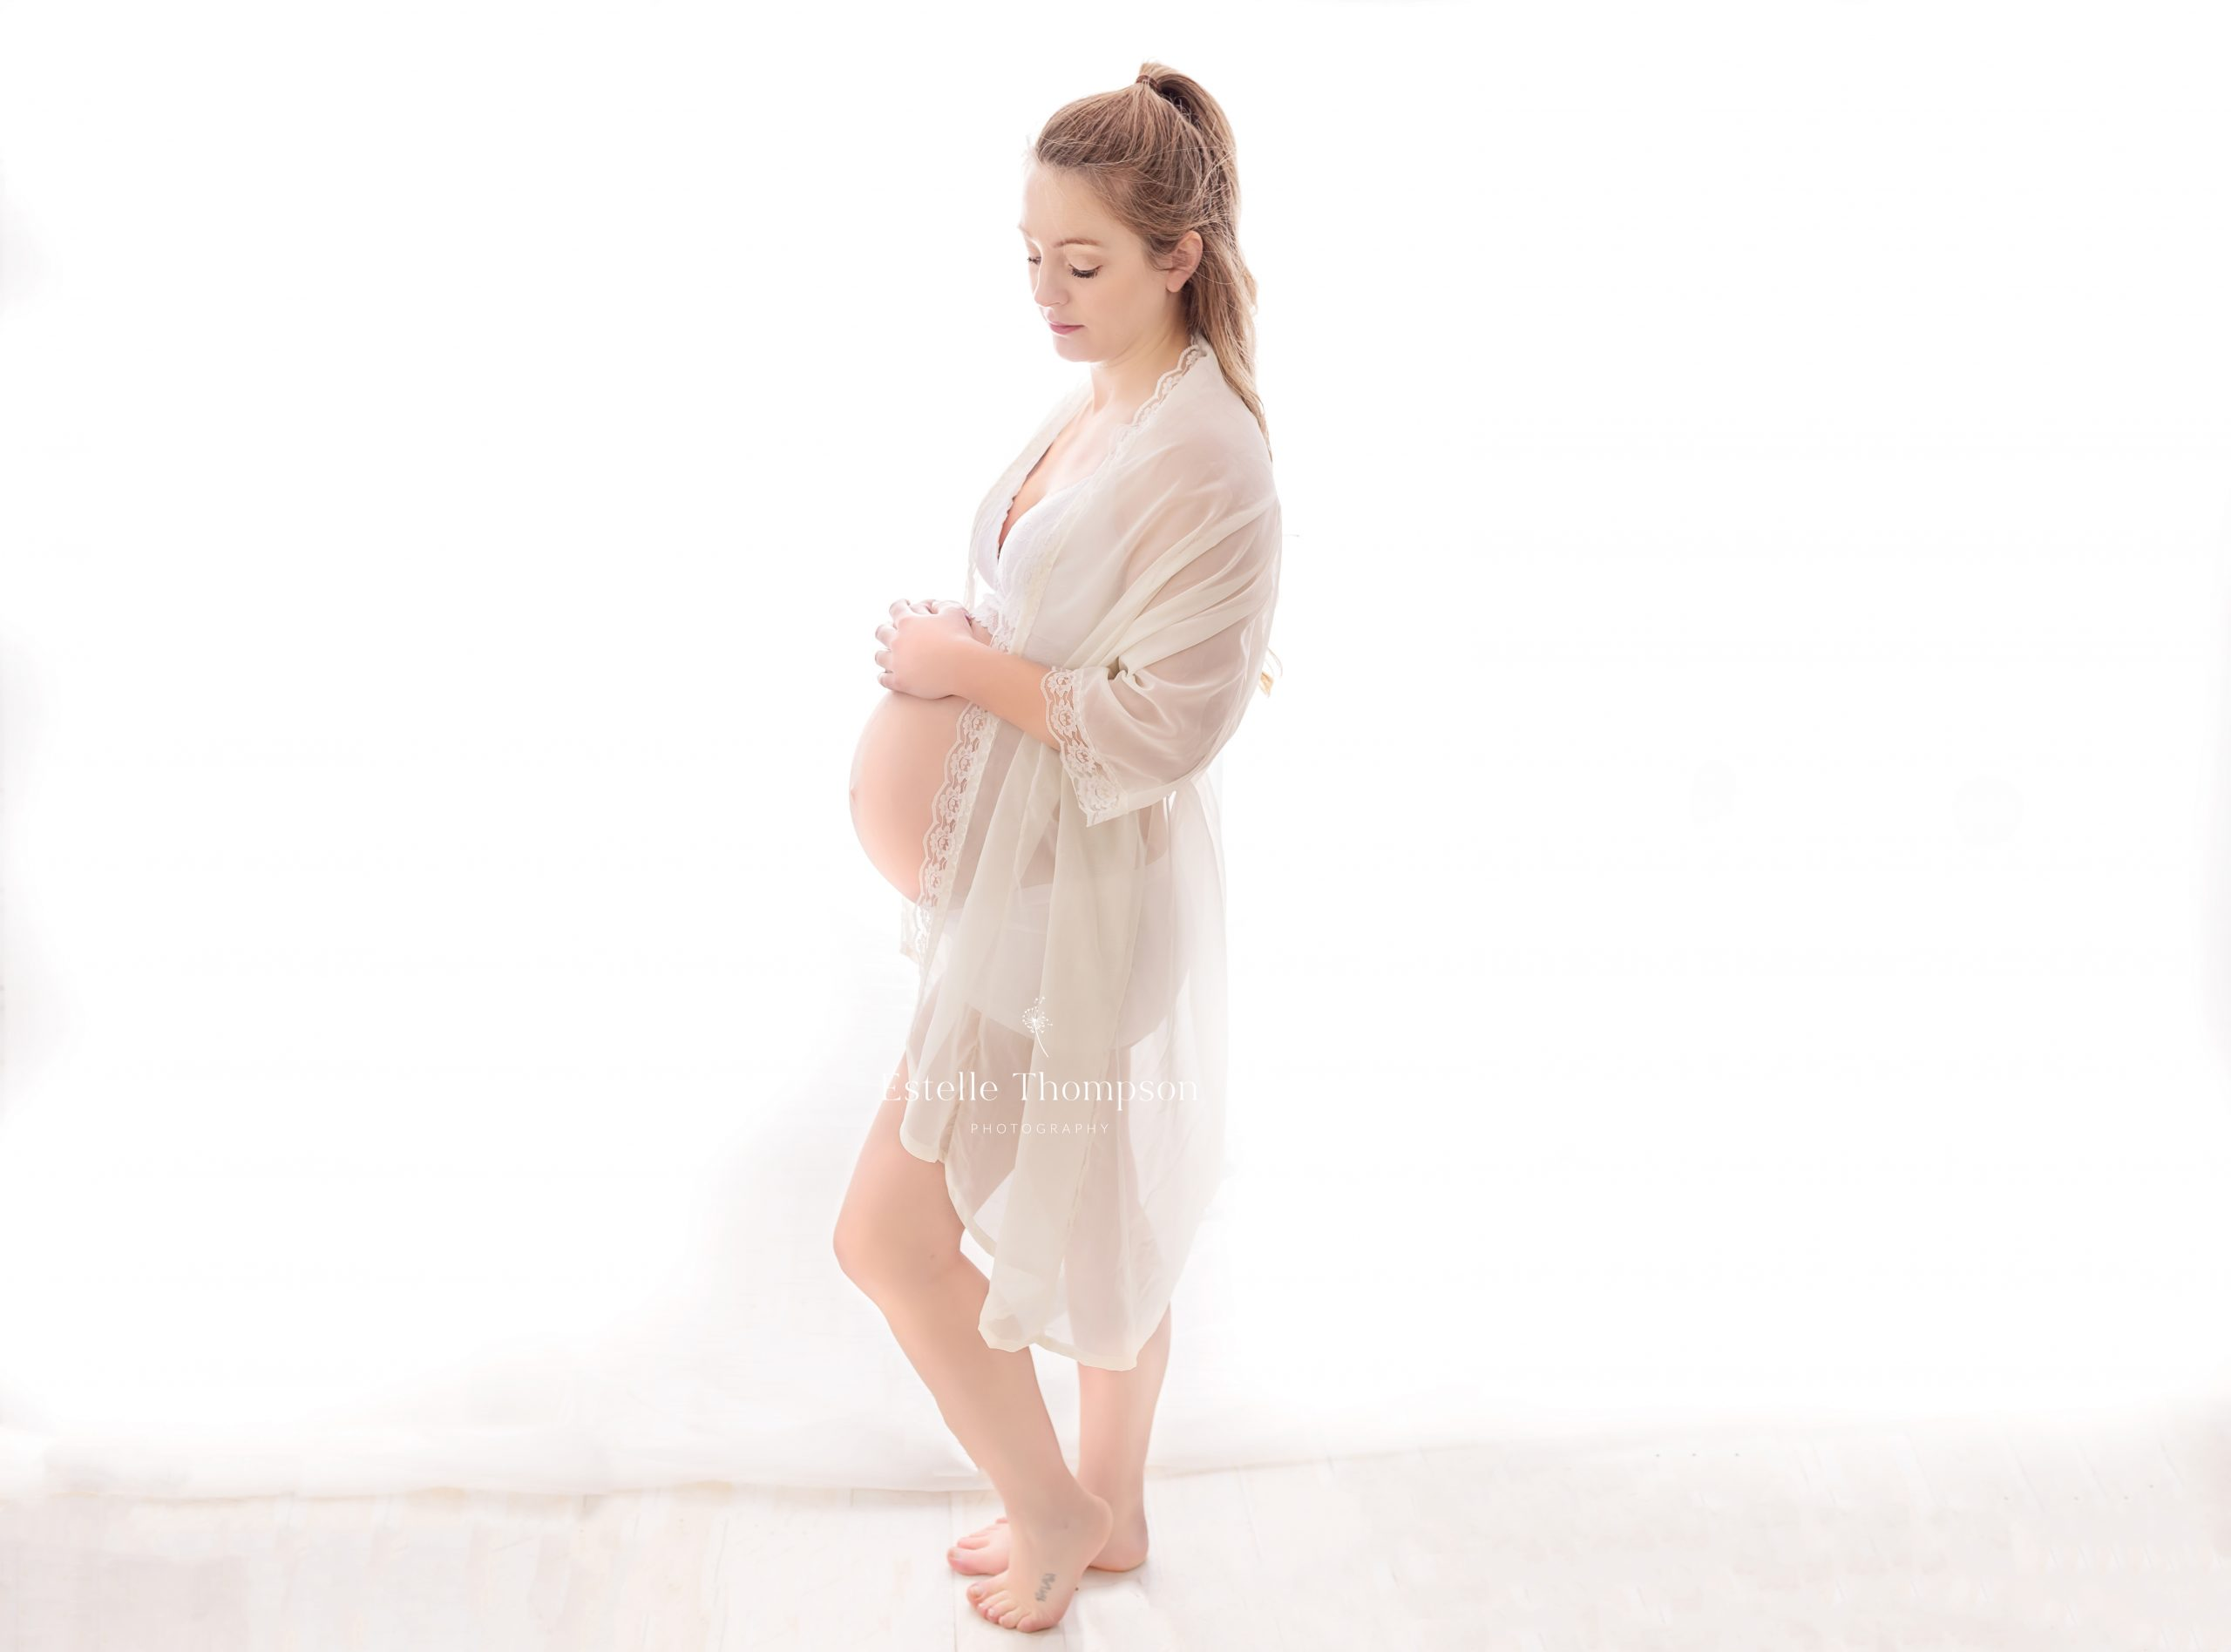 Pregnant lady stands in front of a white curtain in kent maternity photography studio